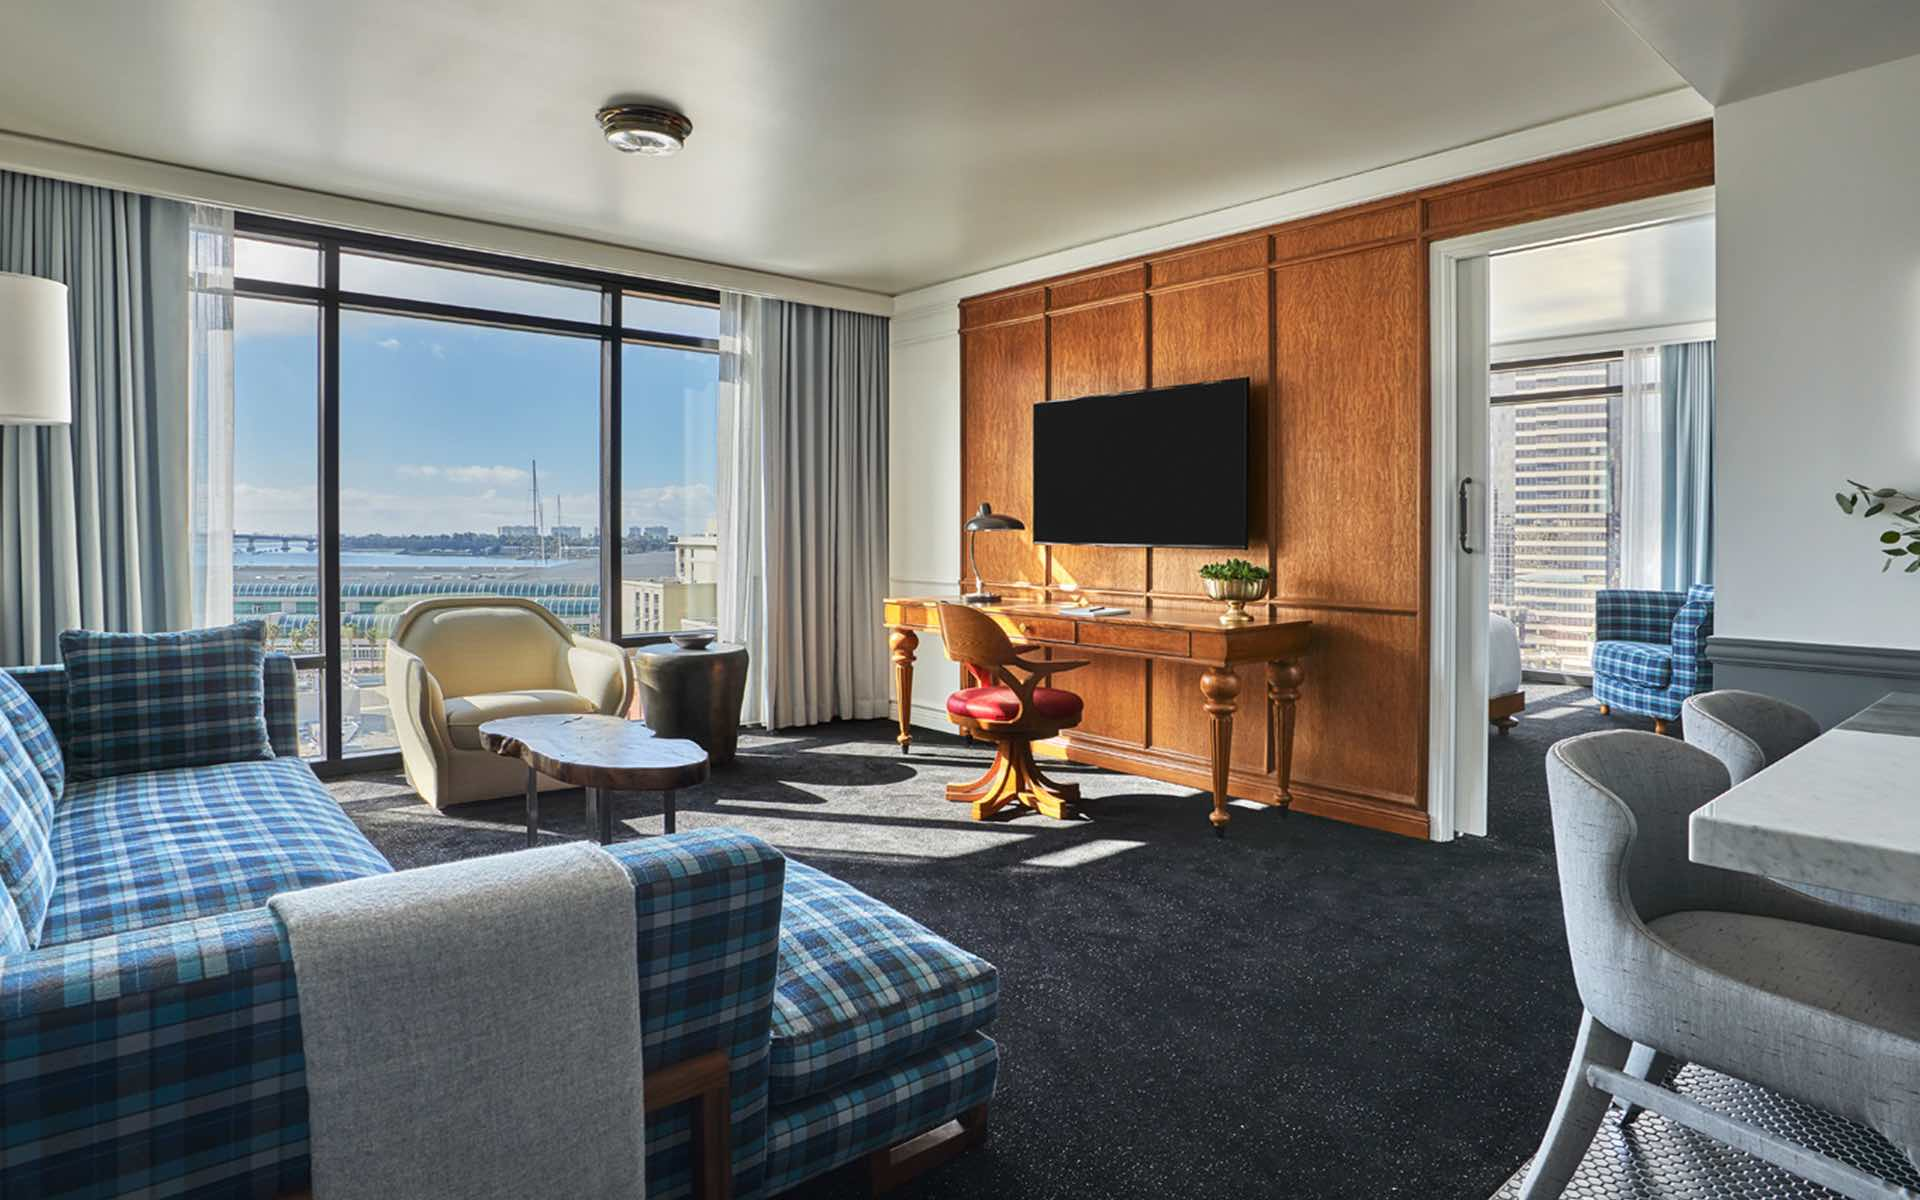 hotels with kitchens in san diego ikea island kitchen suite life luxury hotel offer pendry resorts